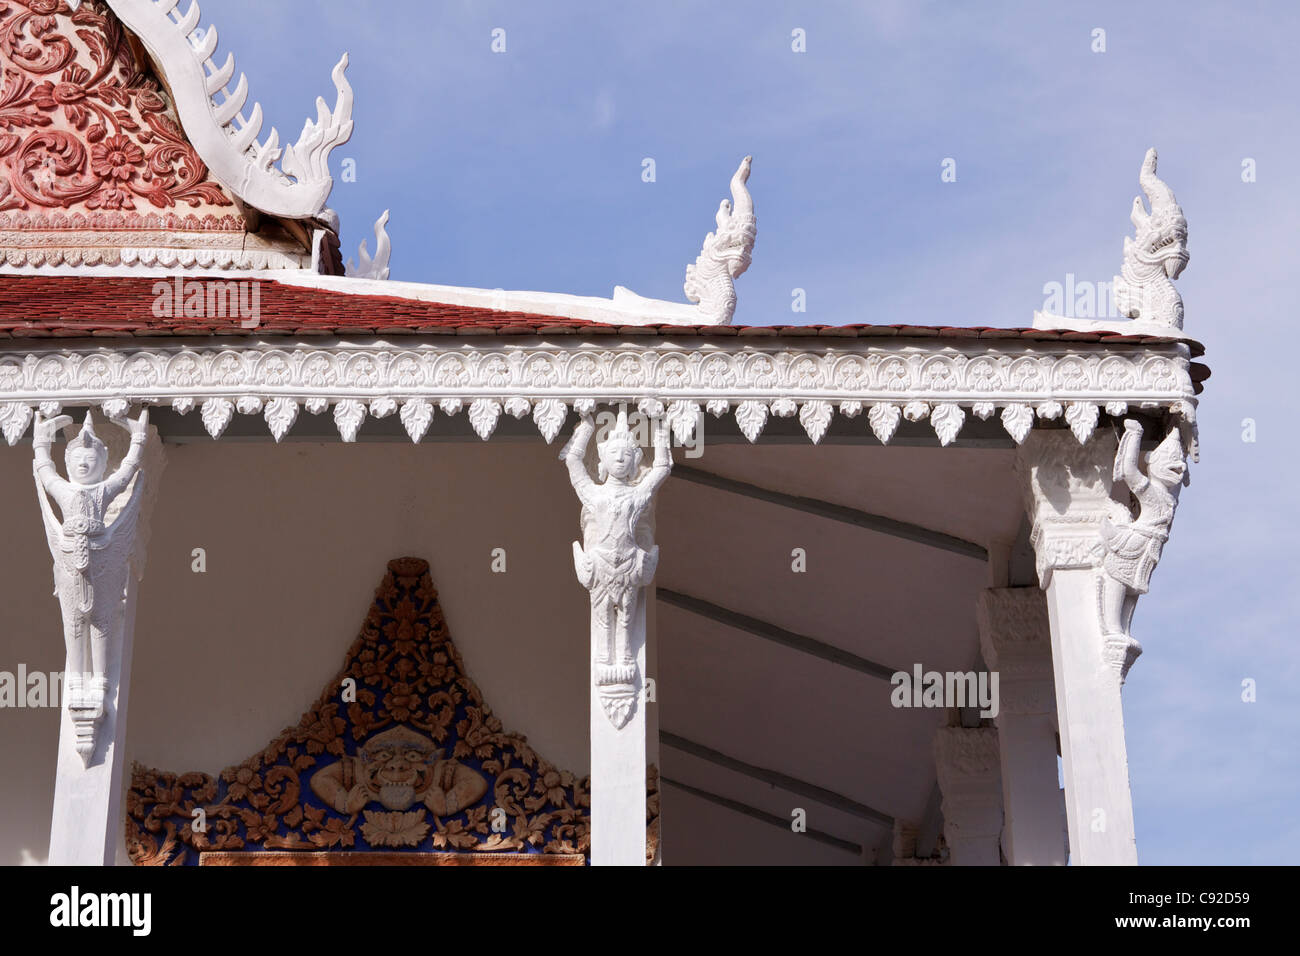 The ornate white mouldings and carvings on the red tiled roof of the original Wat Kampong Tralach Vihara have been - Stock Image